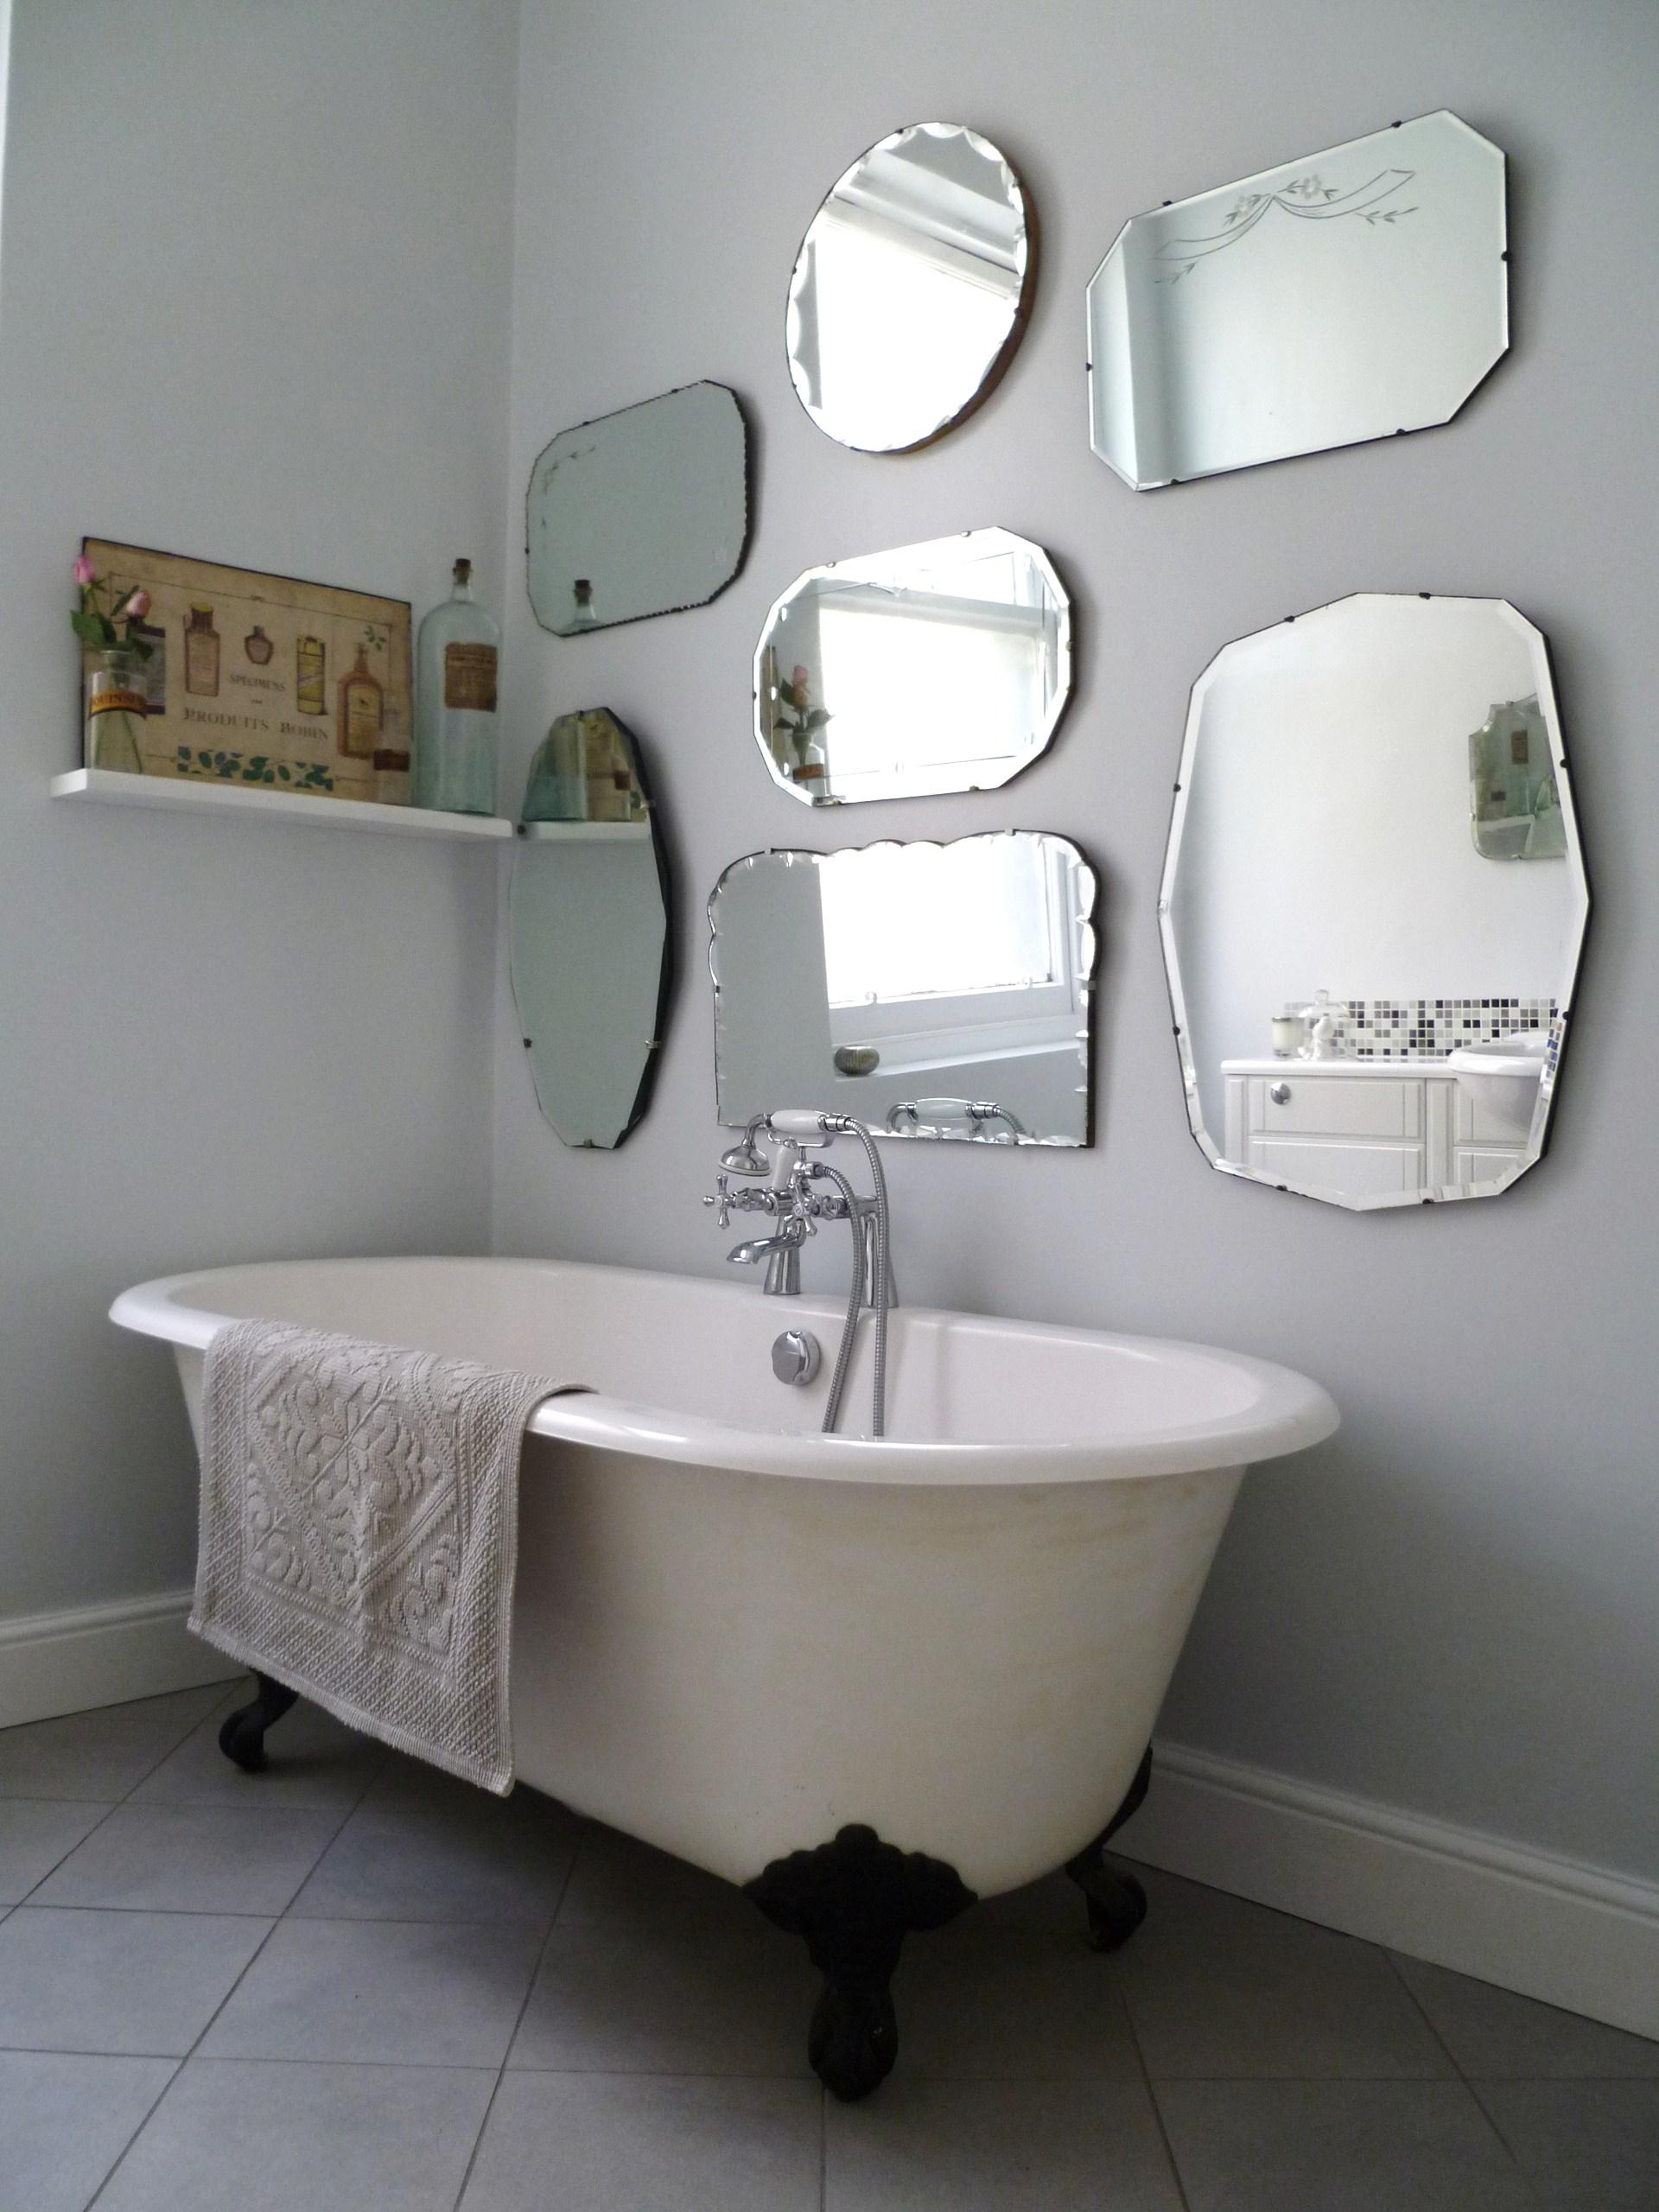 How To Hang A Display Of Vintage Mirrors Vintage Mirrors Pertaining To Vintage Style Bathroom Mirror (Image 6 of 15)